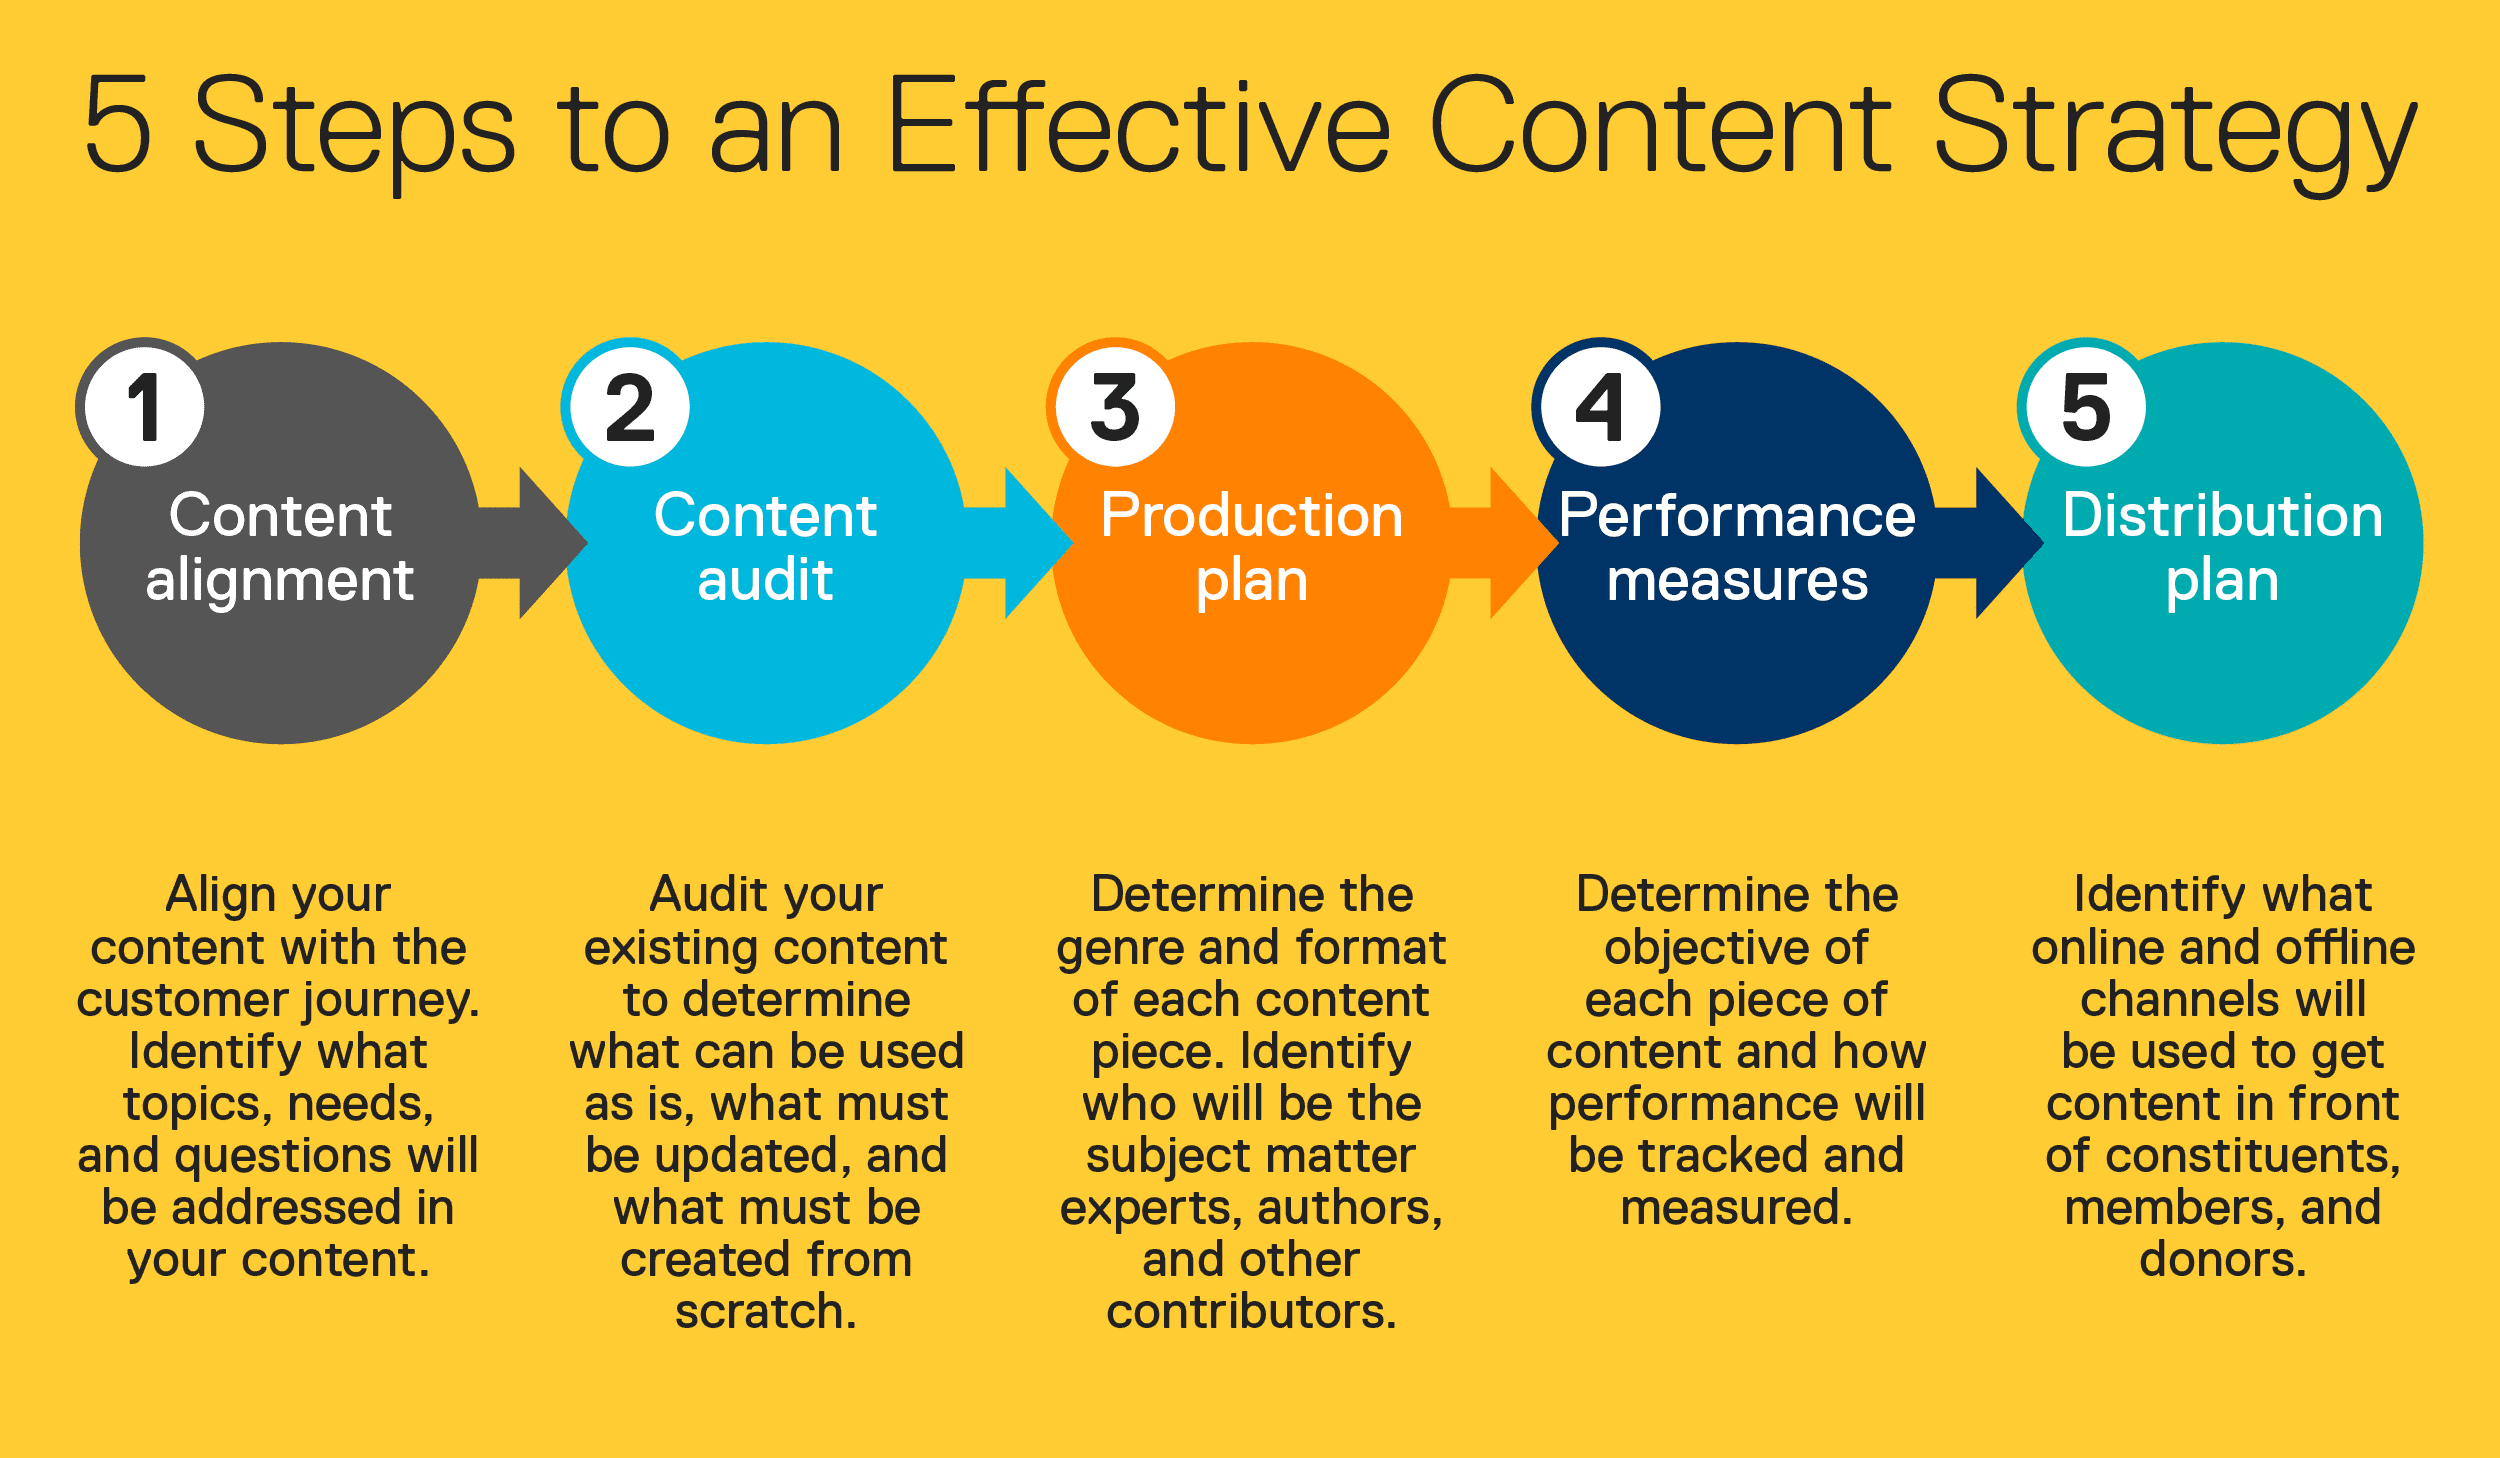 Steps to an Effective Content Strategy